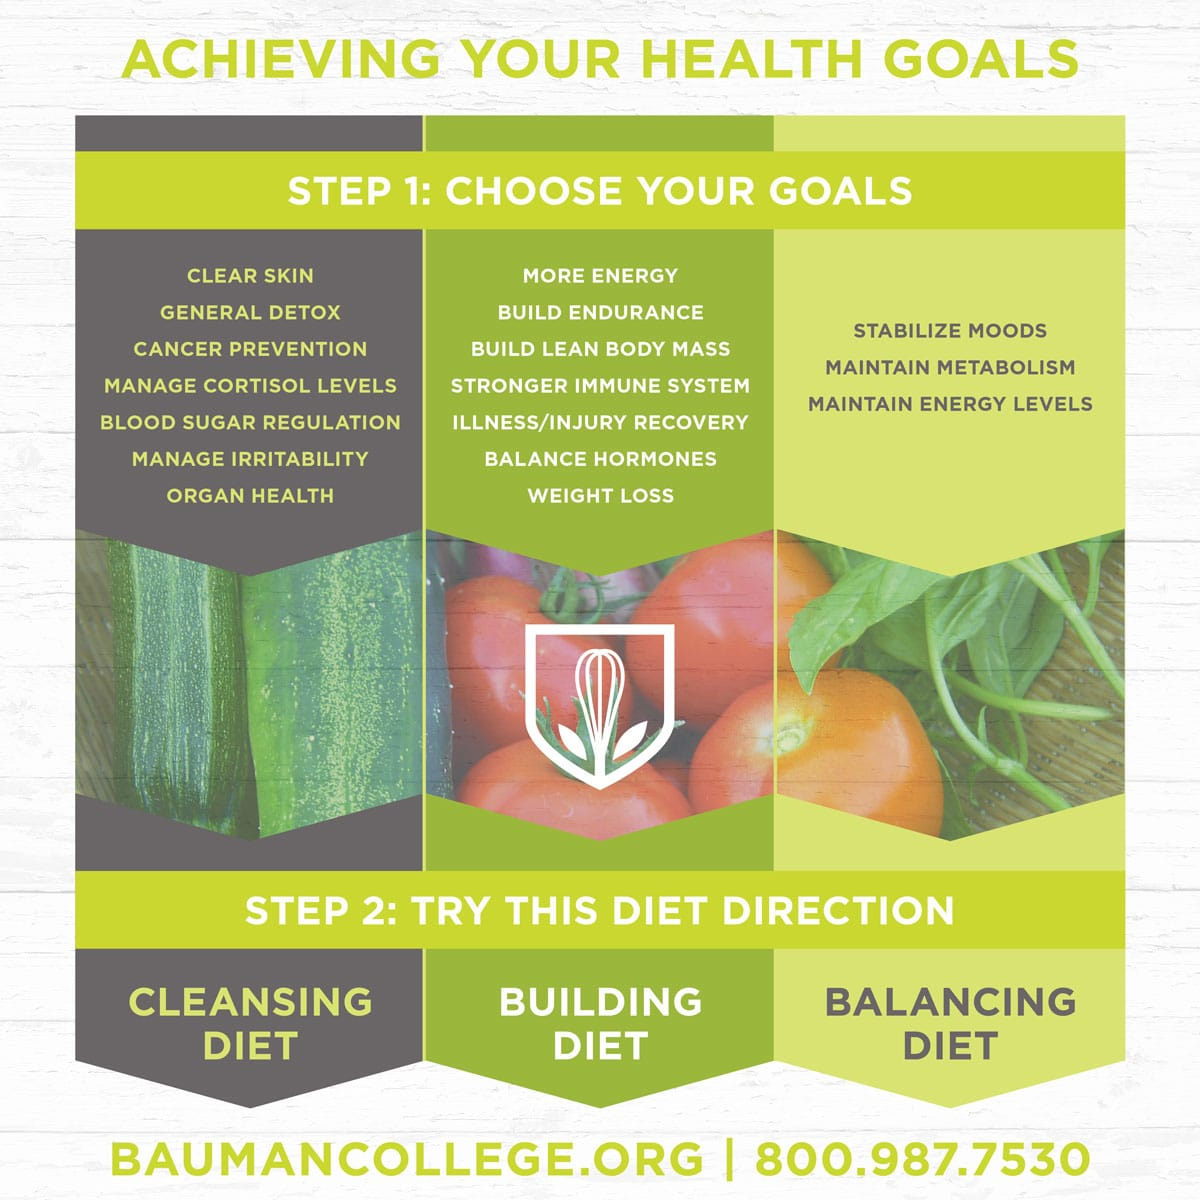 achieving_your_health_goals